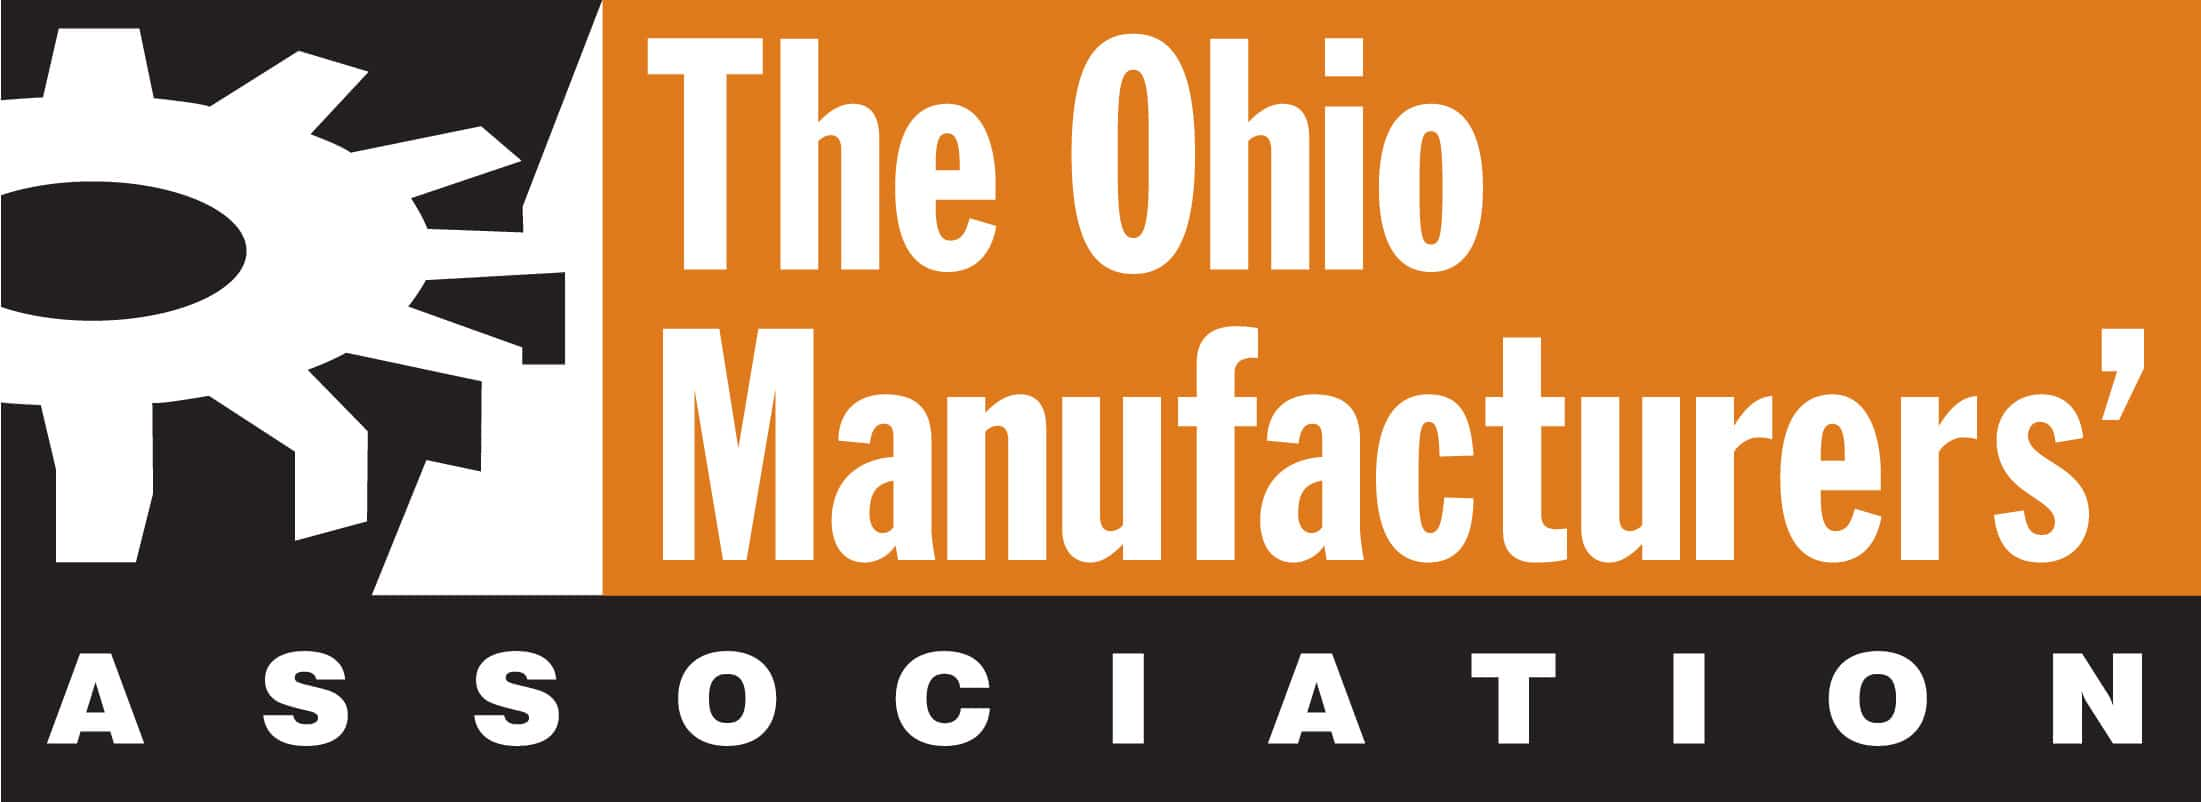 The Ohio Manufacturers Assocation